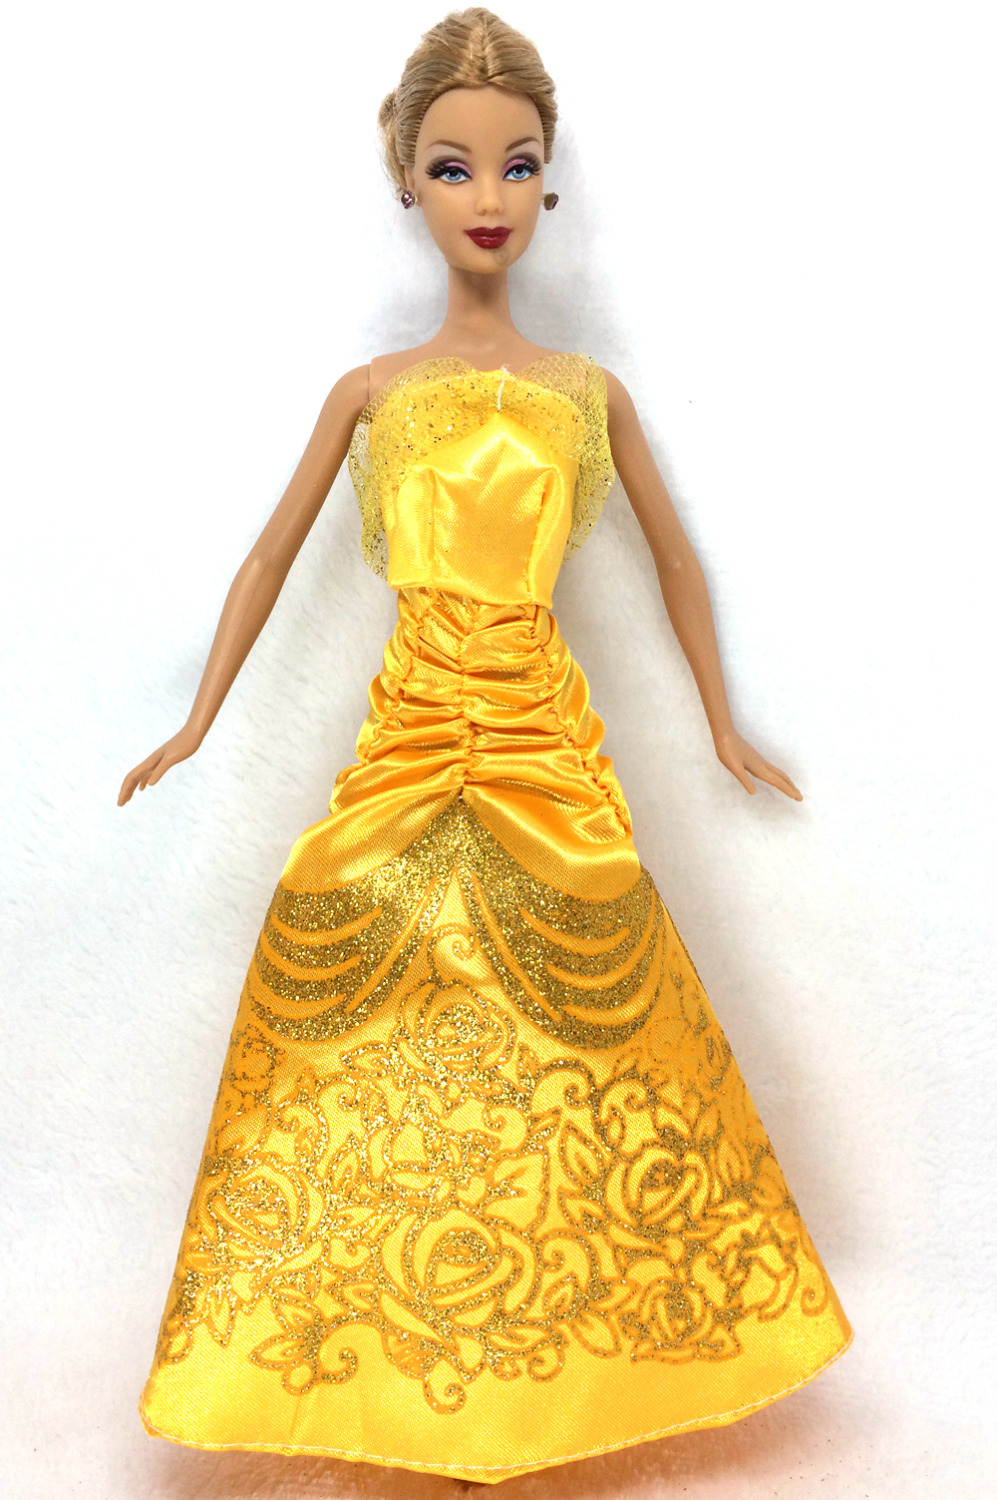 NK One Set Doll Dress Similar Fairy Tale Princess Belle Doll Wedding Dress Gown Party Outfit For Barbie Doll Best Girls' Gift d0372 best girl gift 50cm kurhn princess doll with large wedding dress gift luxury dress set handemade romantic bride 06